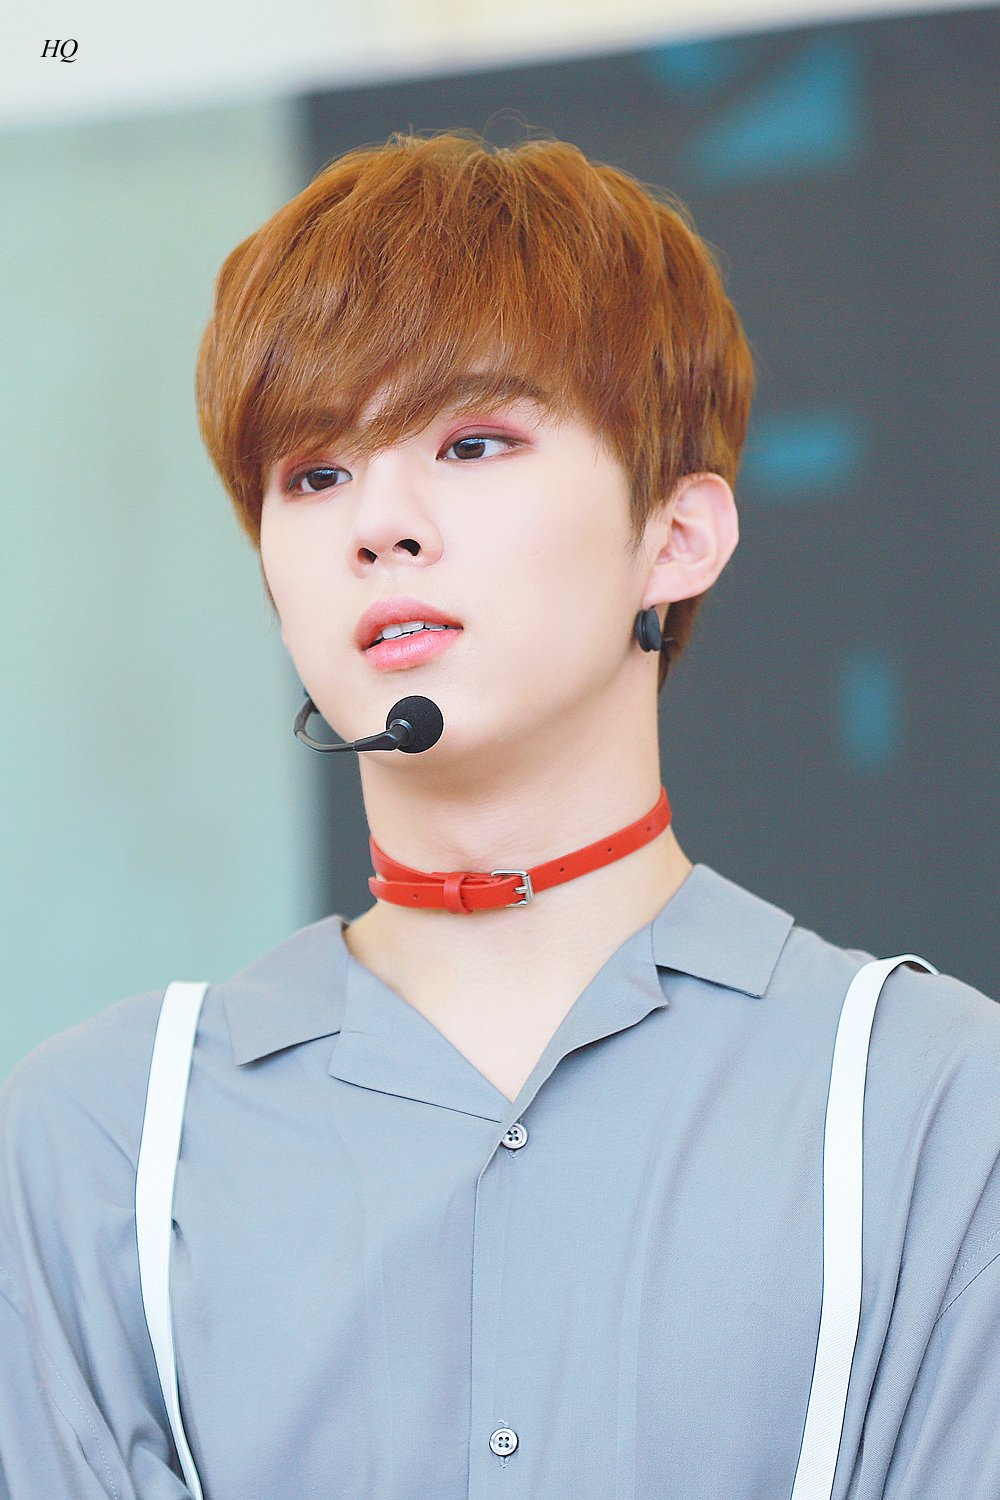 up10tion, up10tion profile, up10tion facts, up10tion weight, up10tion members, up10tion age, up10tion wooshin, wooshin